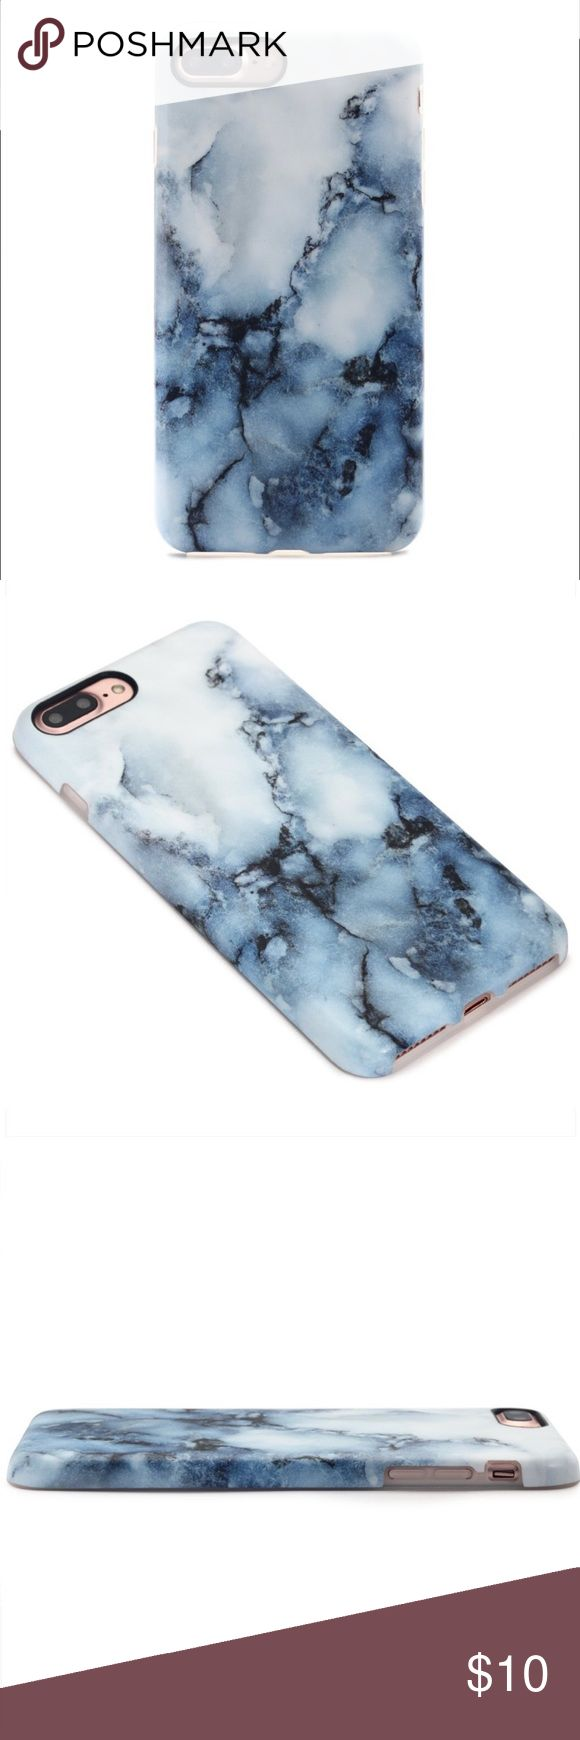 GOLINK iPhone 7 Plus Case, Blue Marble Print White / Blue Marble Print. Case fits iPhone 7 Plus, 5.5inch. Made by GOLINK. In-Mould Print Technology. Slim-Fit. Anti-Scratch. Anti-Finger Print. Flexible TPU Makes It Easy to Attach and Remove. ****note this print is Matte, no shine****I purchased from Amazon but decided not to use. New w/original package. Accessories Phone Cases